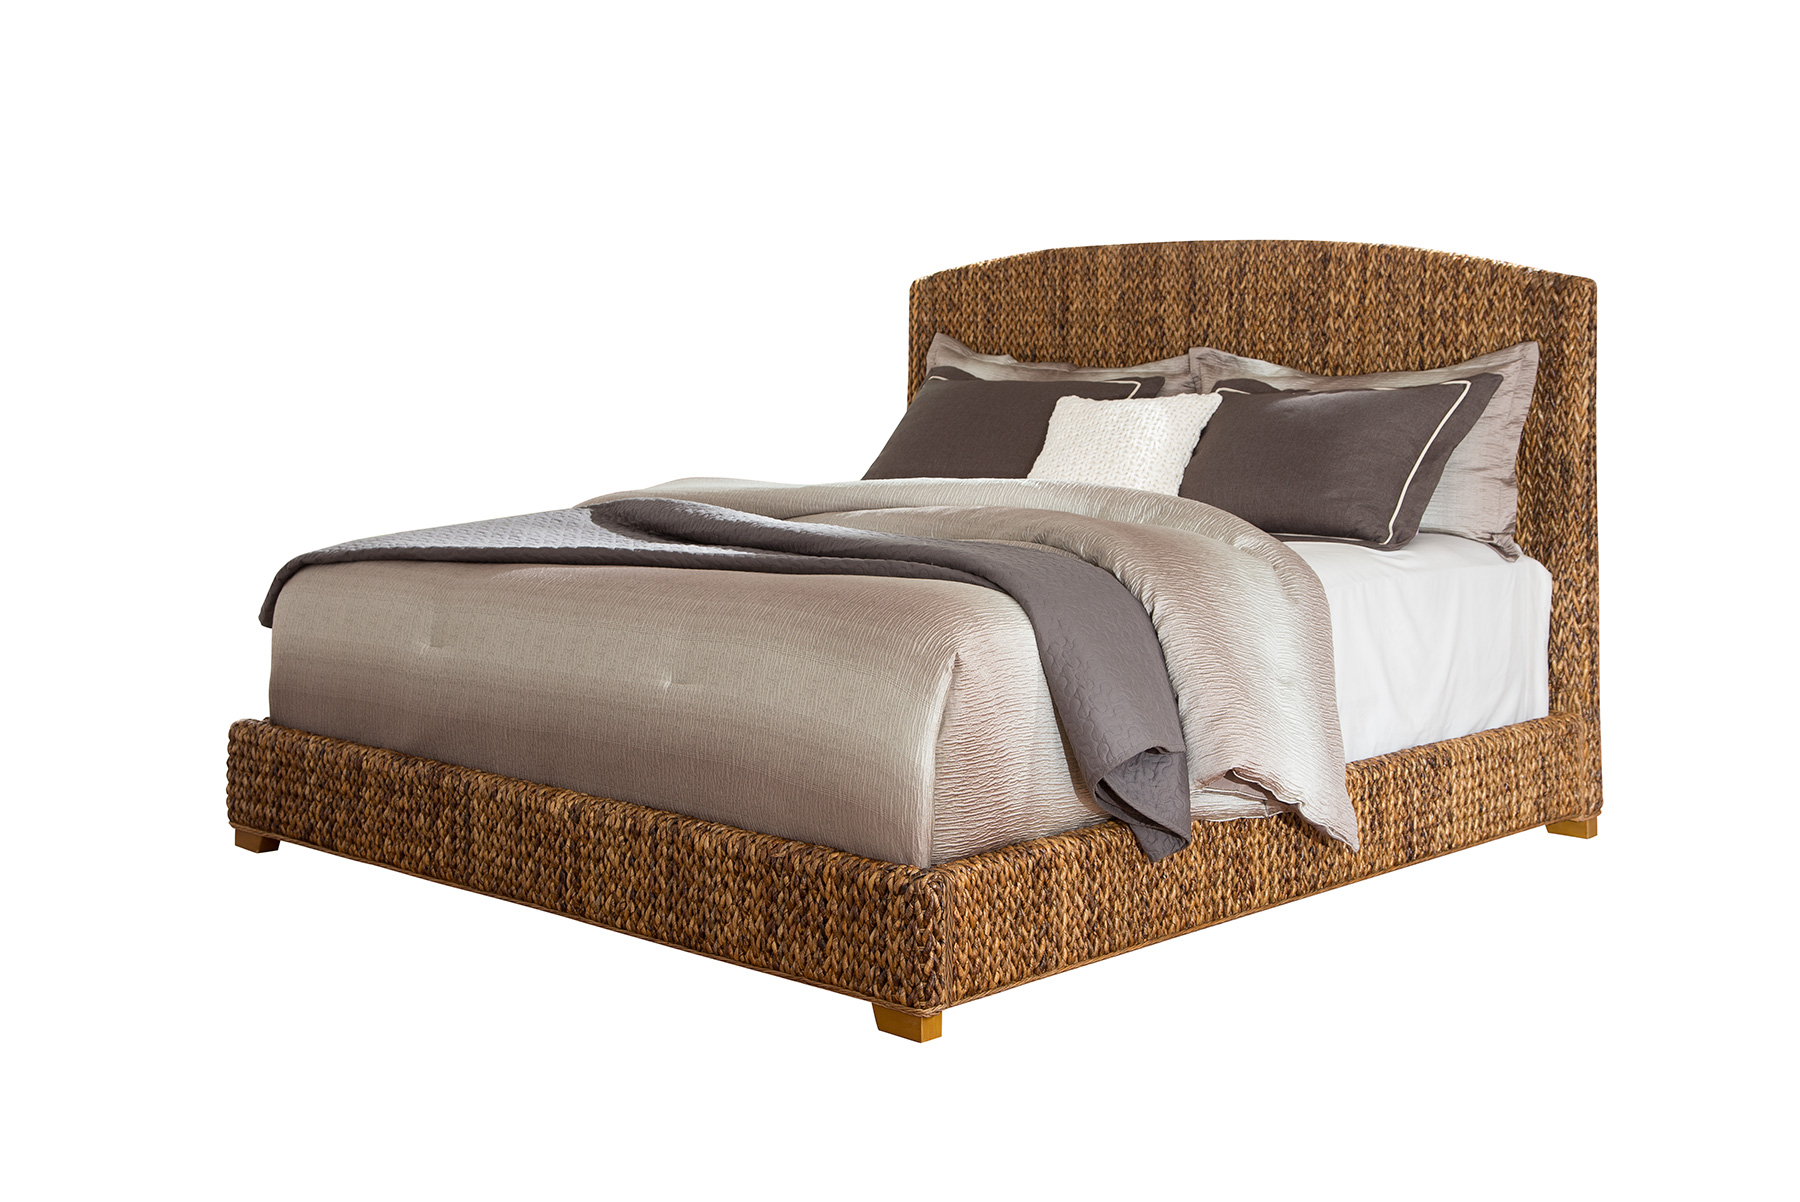 Coaster Laughton Woven Banana Leaf Queen Bed Value City